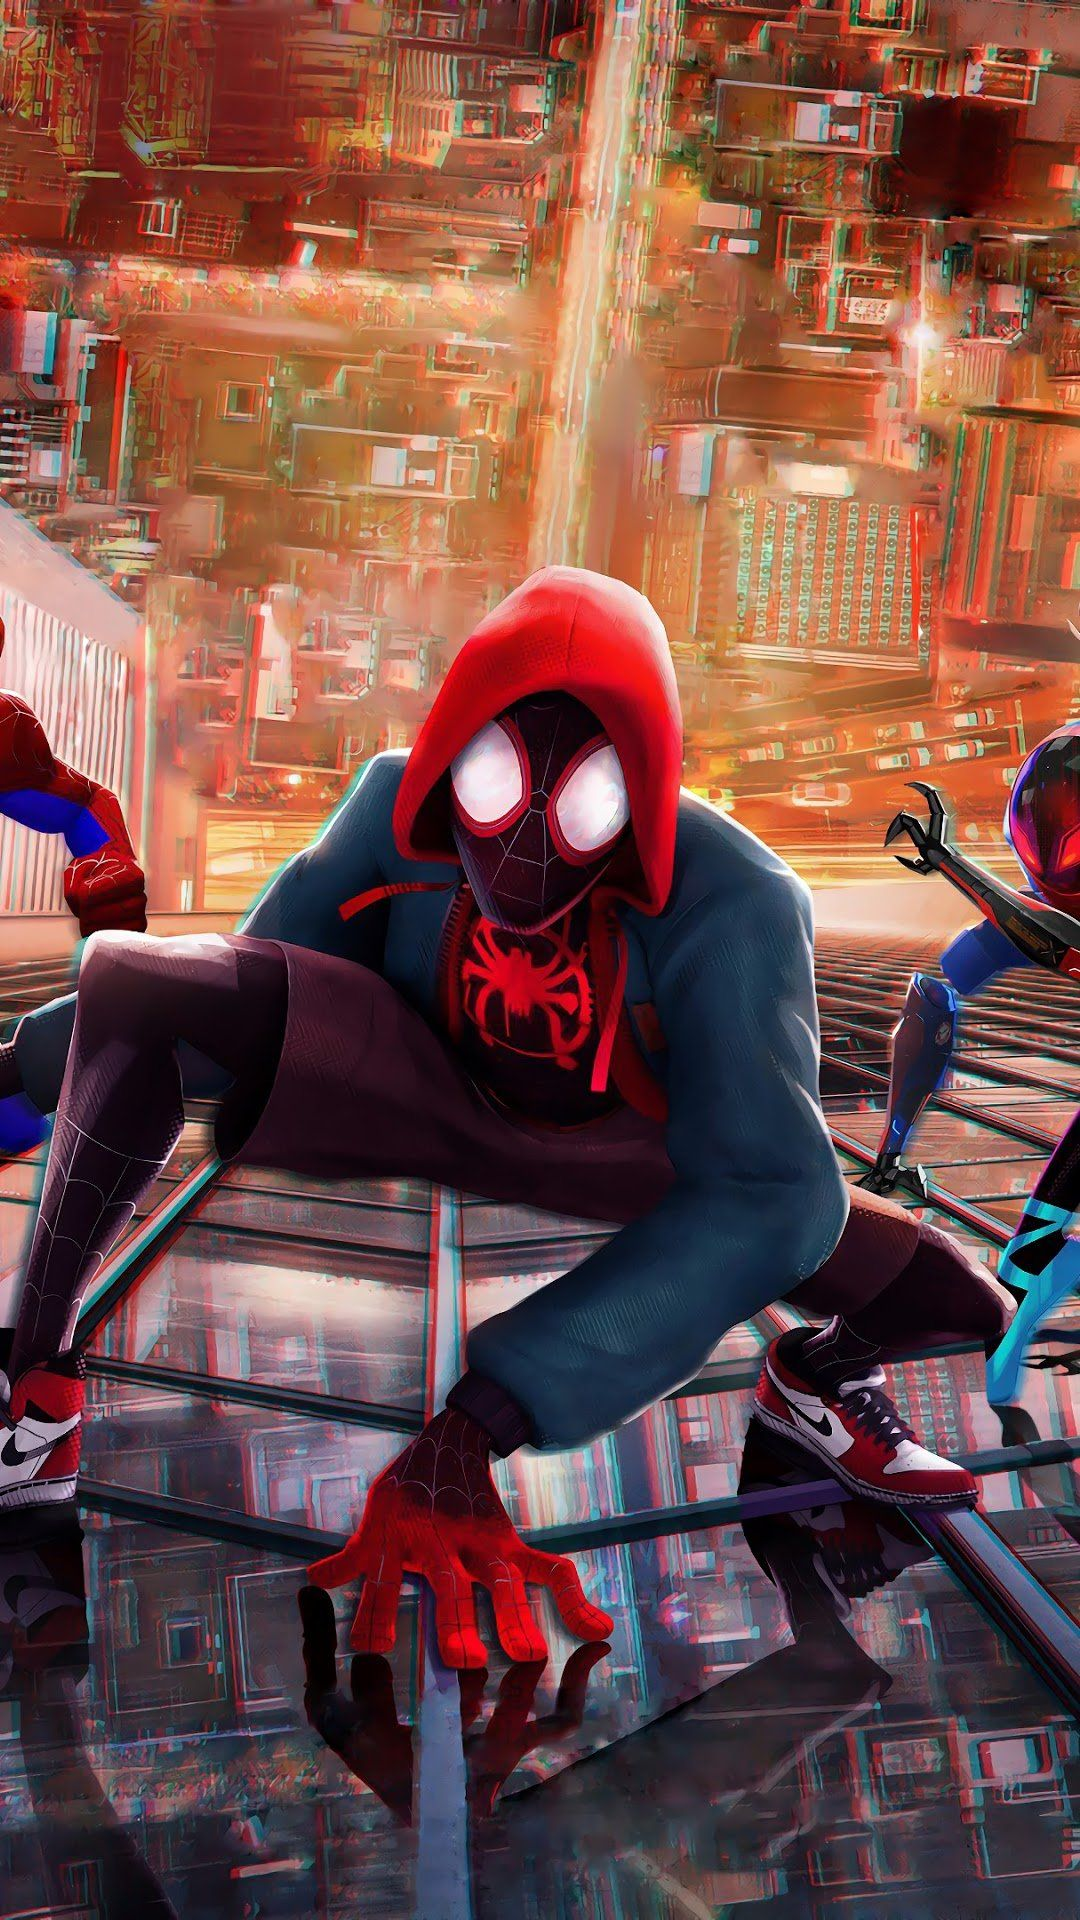 4K Anime Aesthetic Spider Verse Wallpapers - Wallpaper Cave